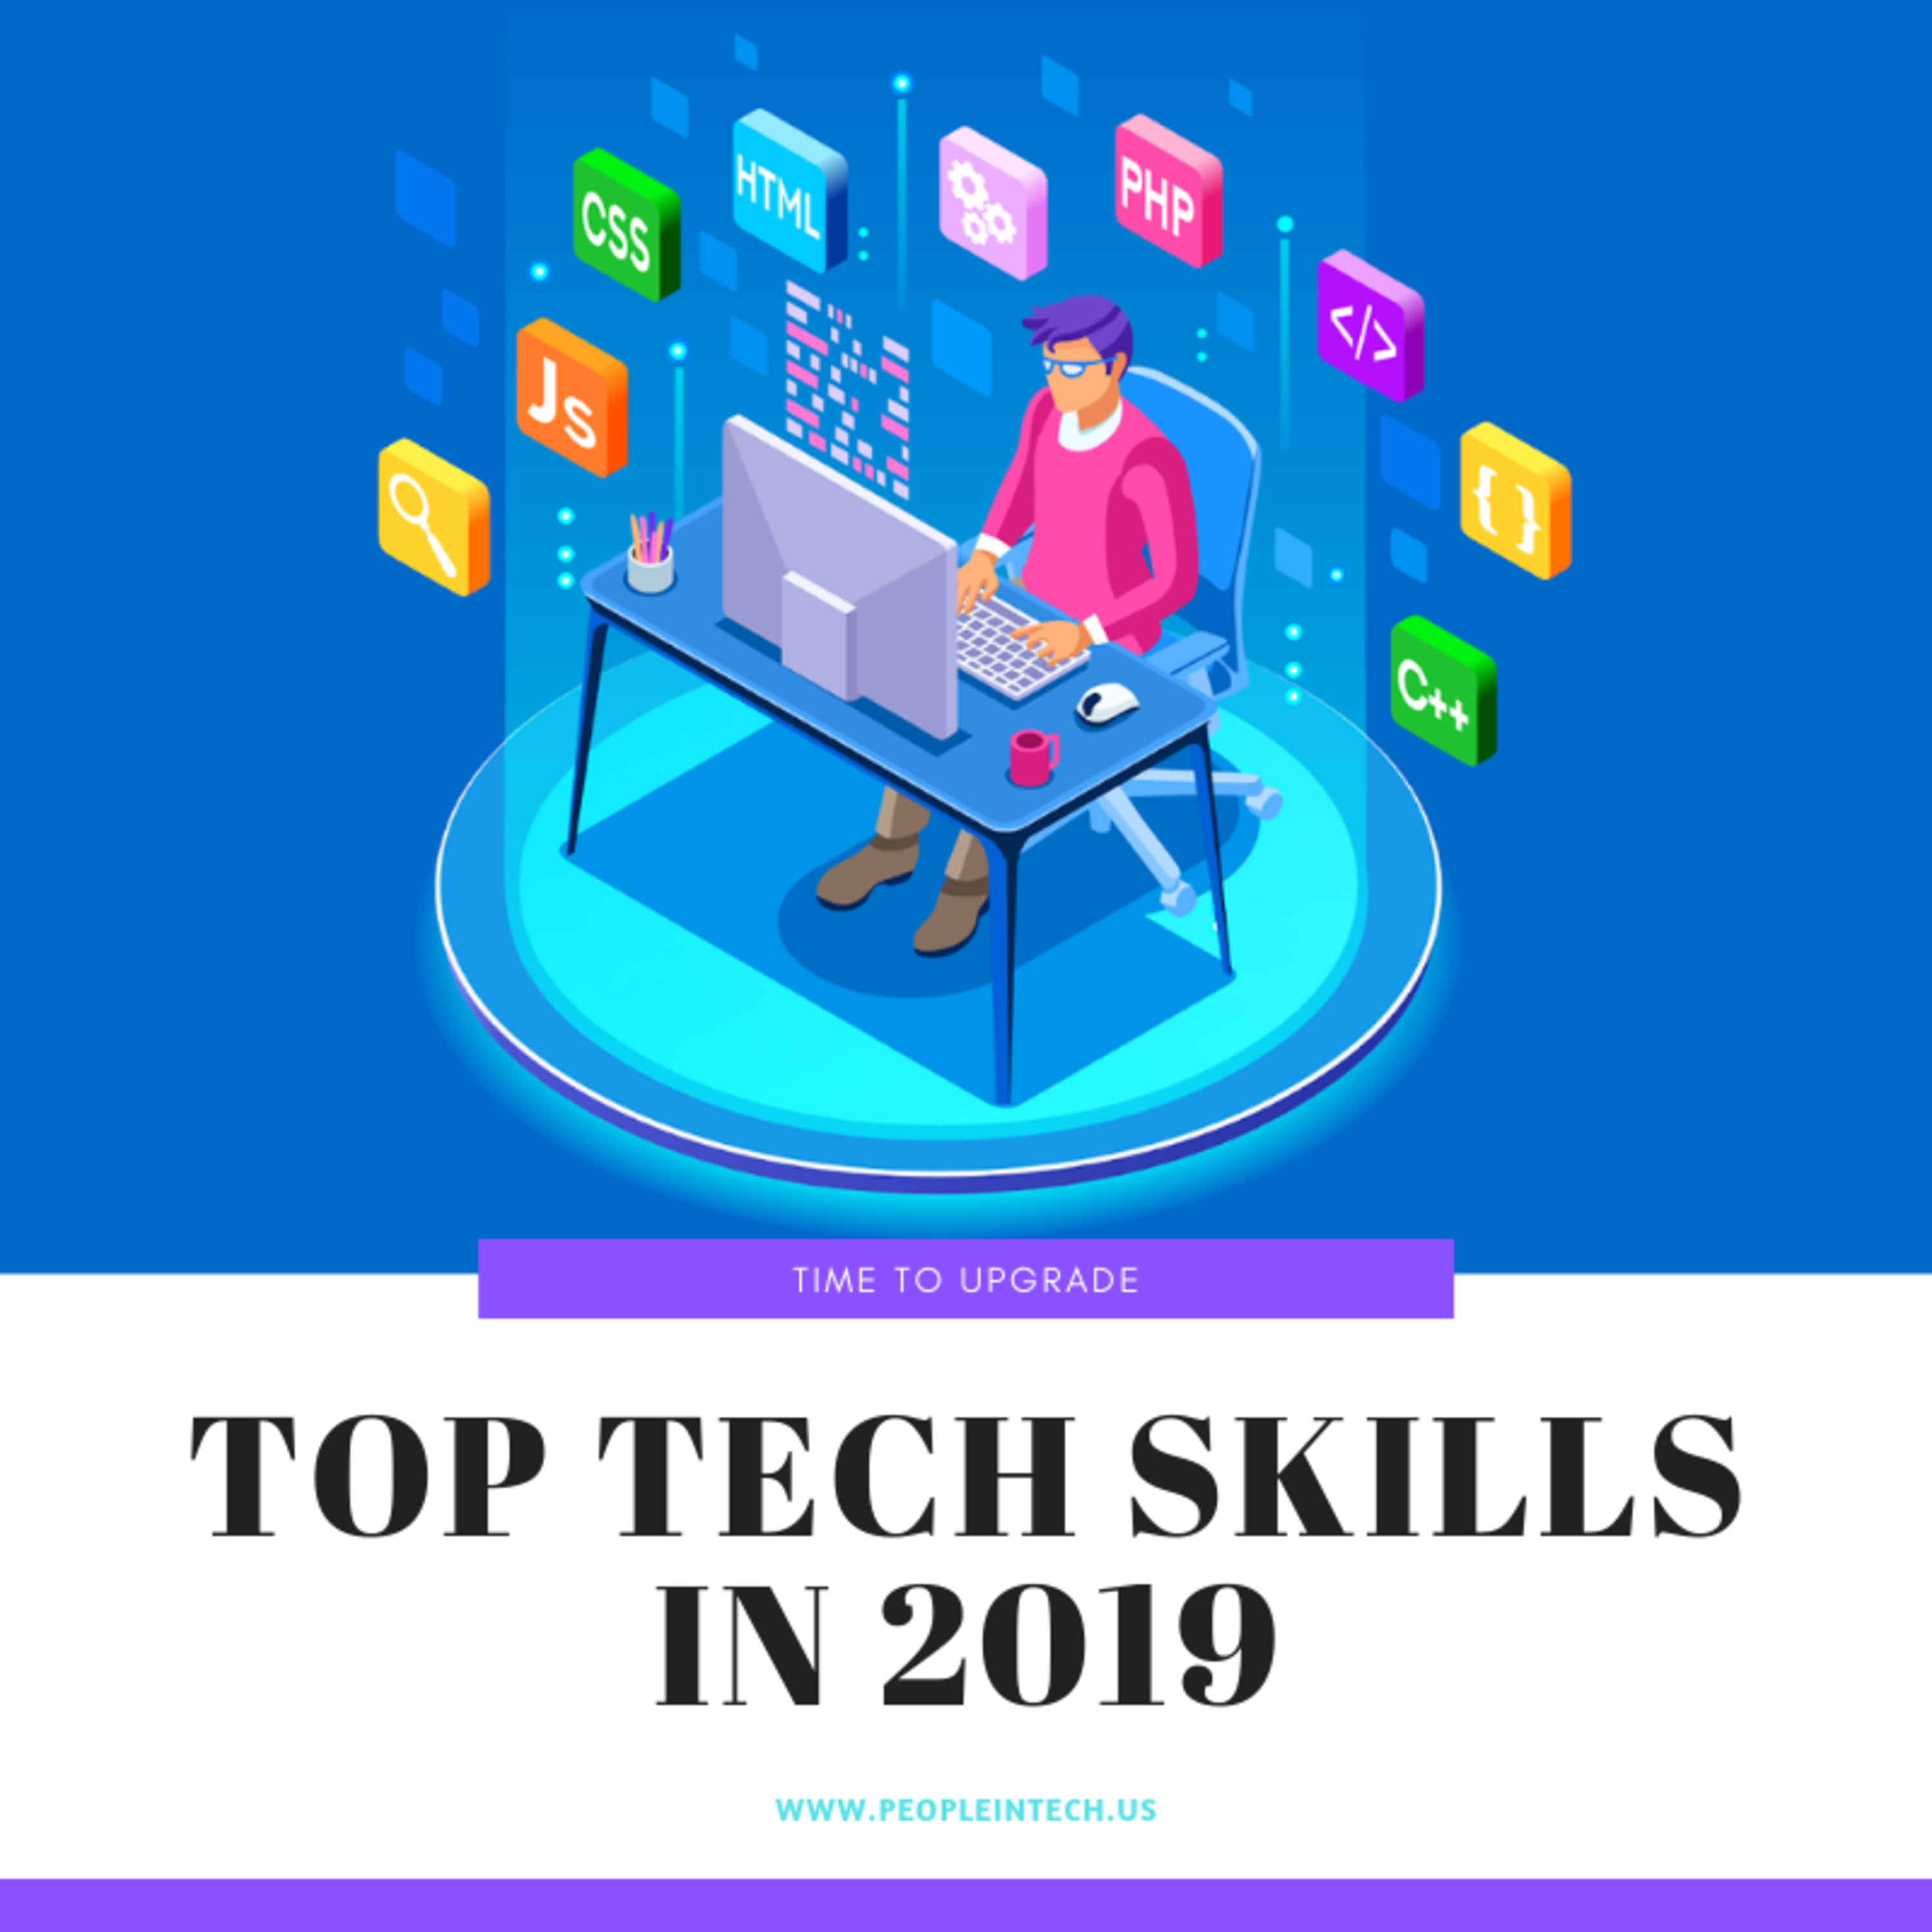 Top Tech Skills in 2019 - 08/06/19